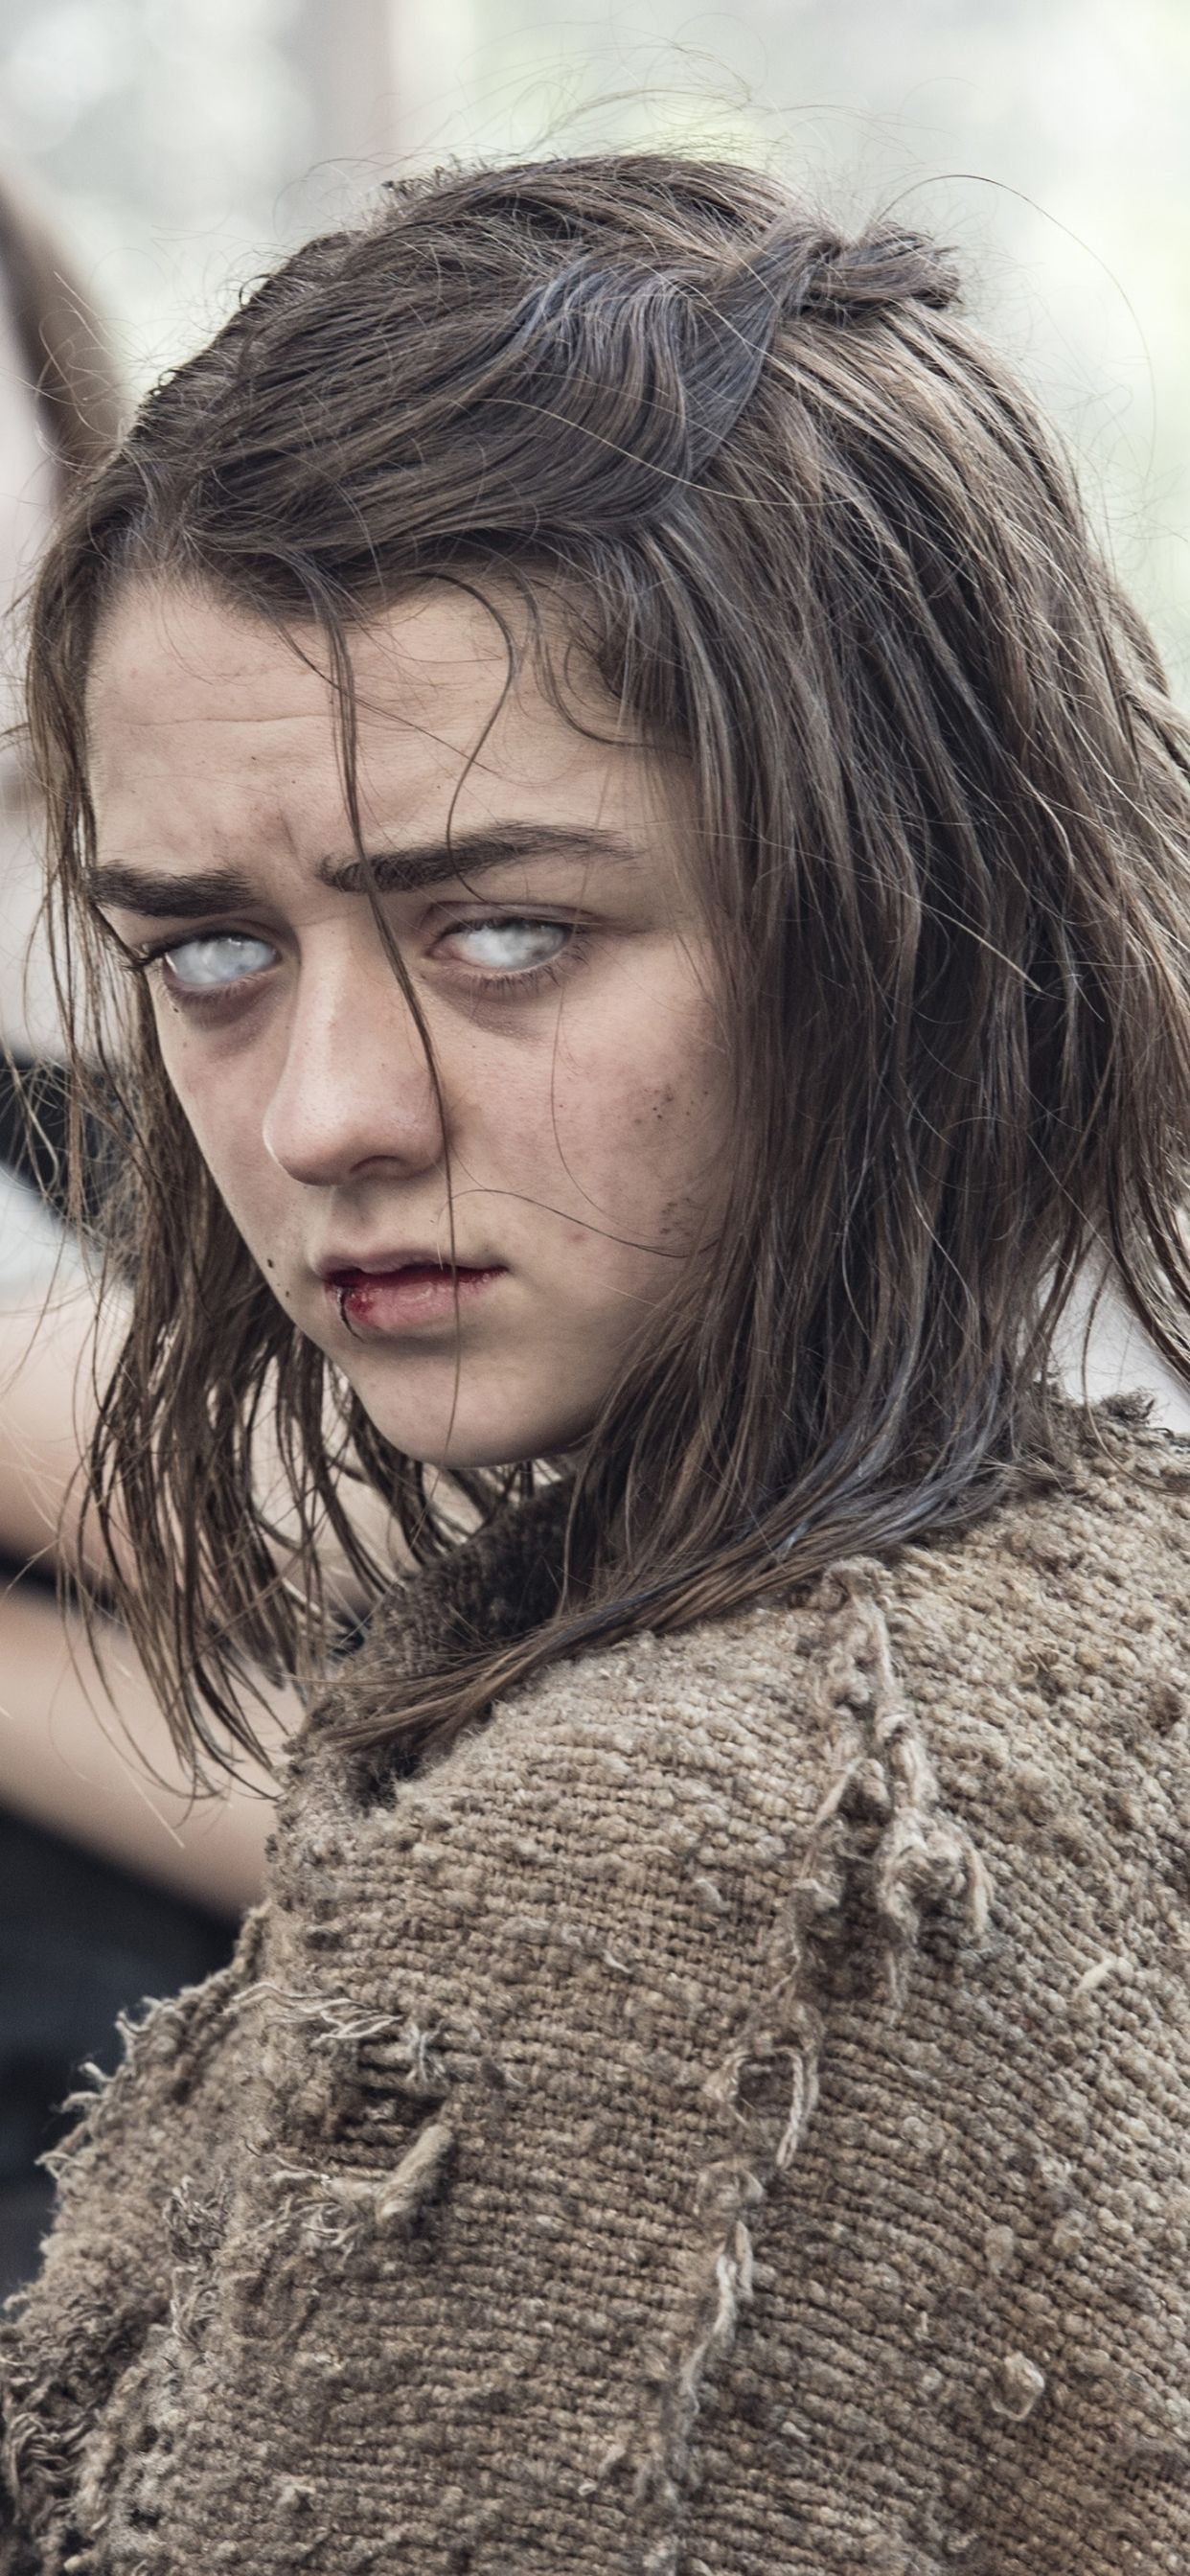 9 Best Arya Stark Wallpaper Ideas Arya Stark Maisie Williams Arya